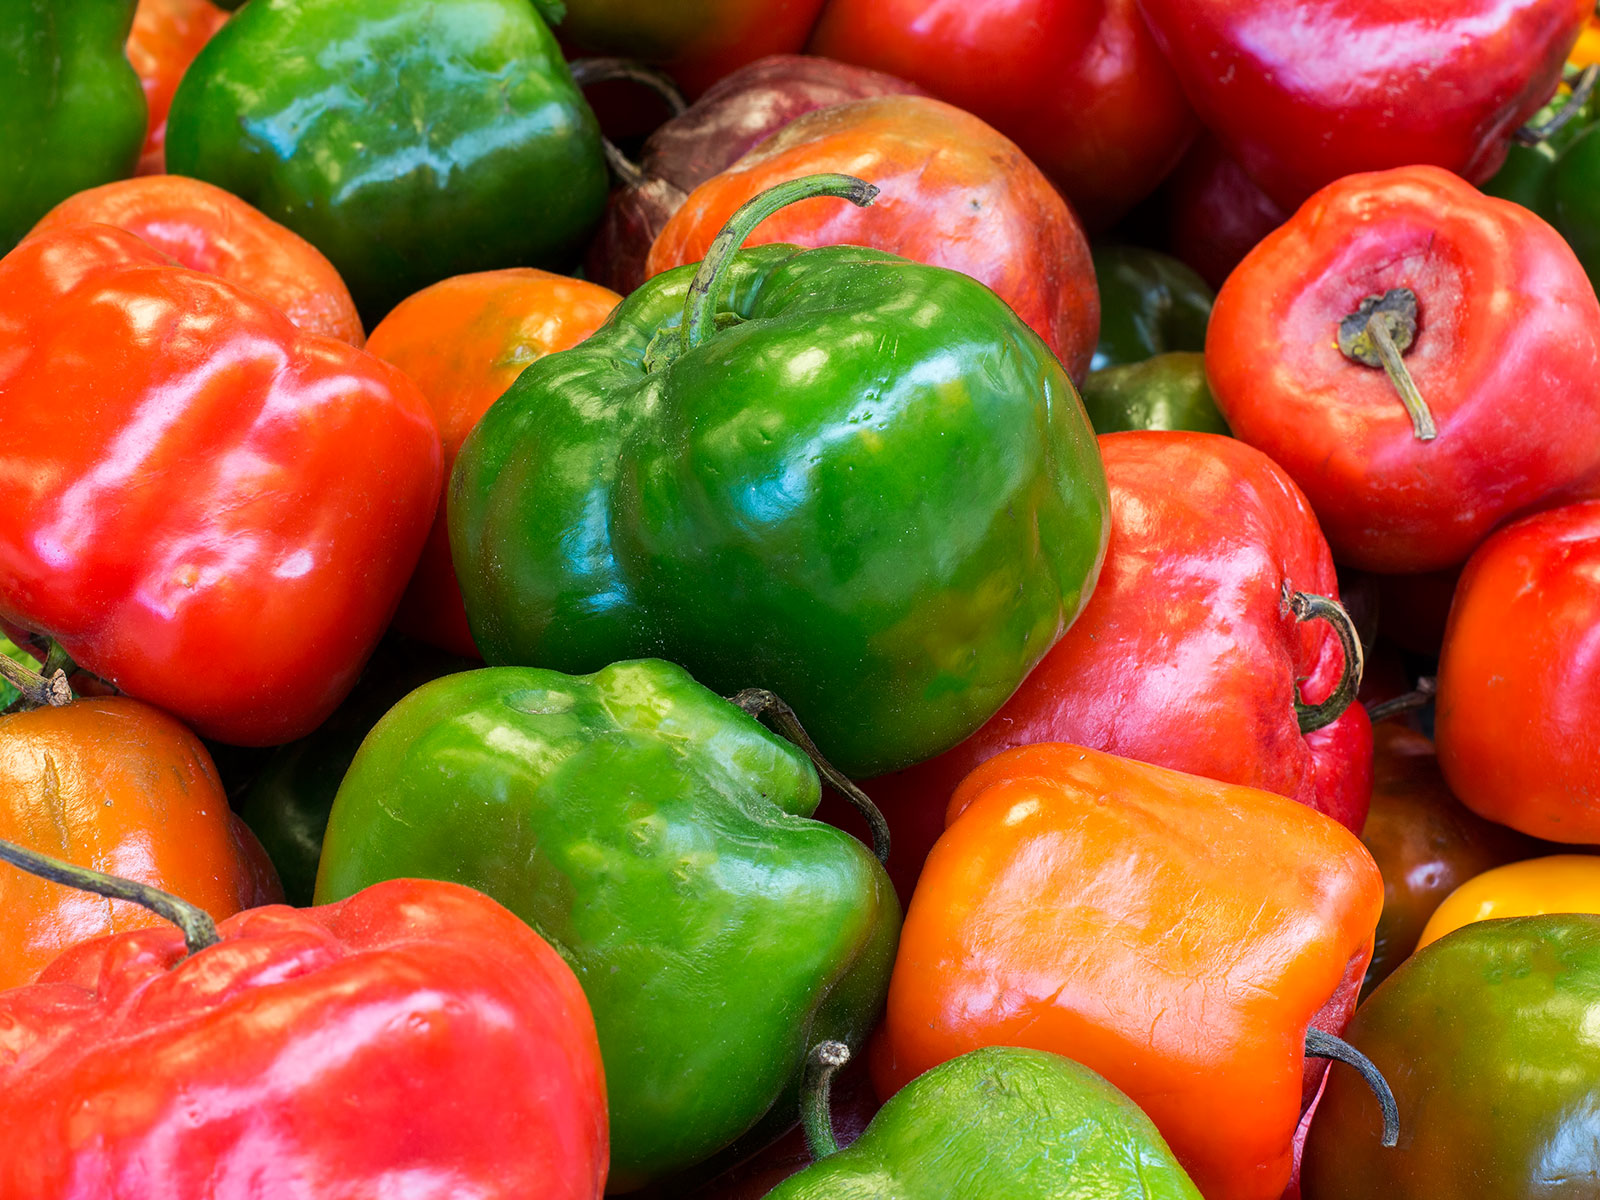 Attention Spicy Food Lovers: 5 Chilies to Consider for Your Cooking